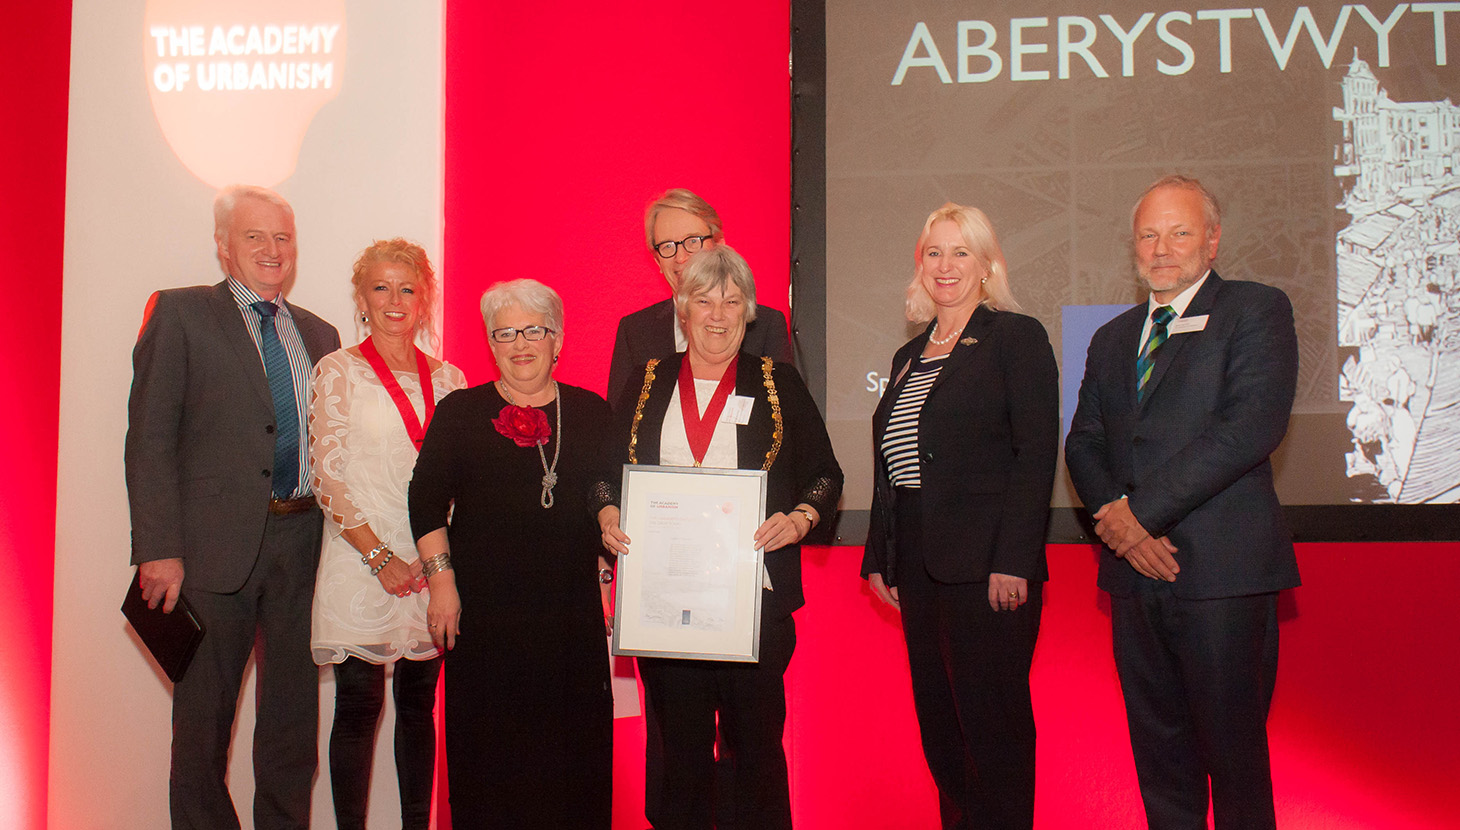 Aberystwyth collects the Great Town award